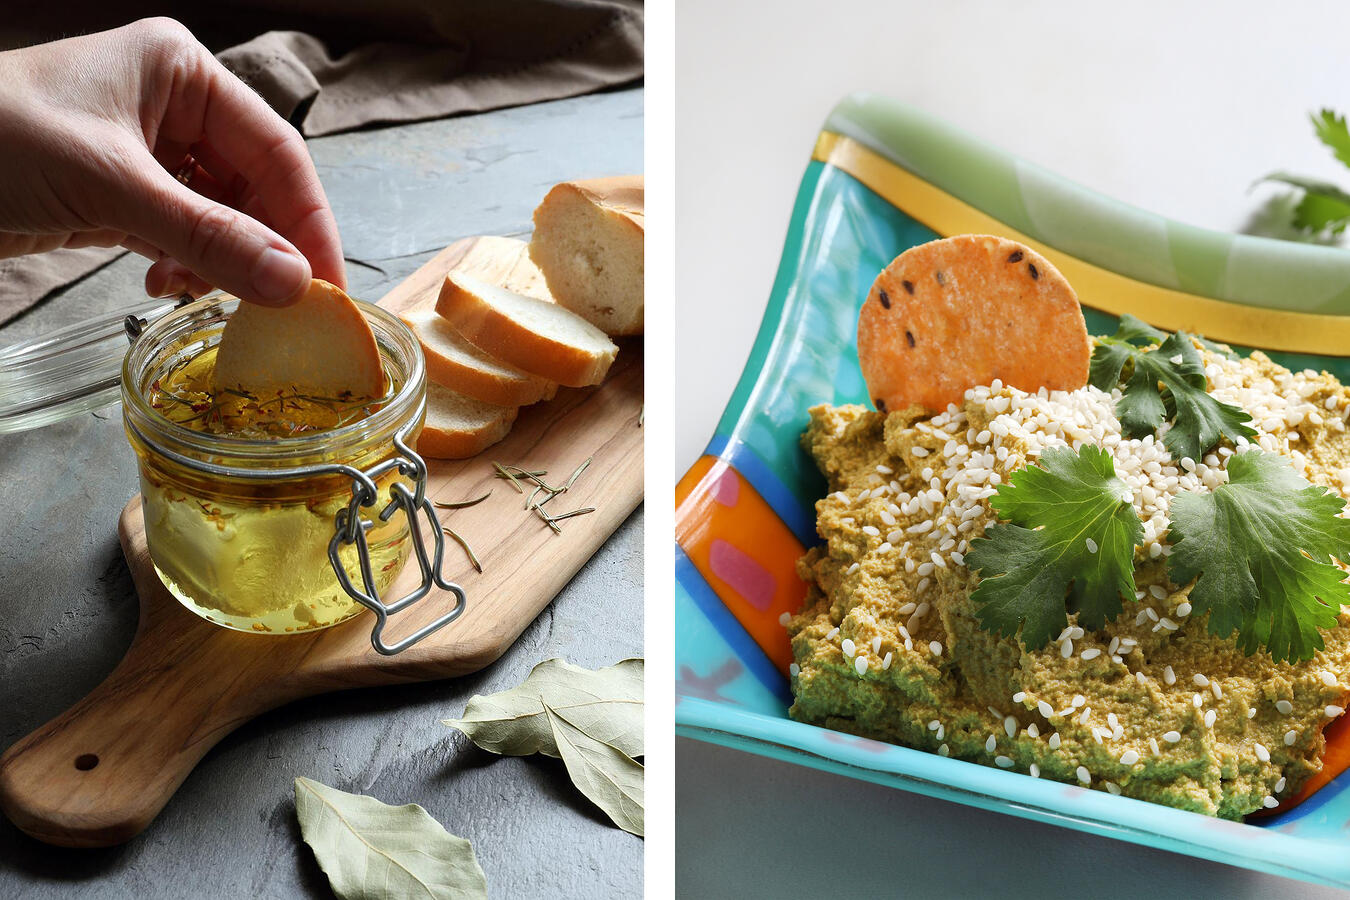 Herb-infused oils with baguette slices and vegan carrot cashew dip with crackers